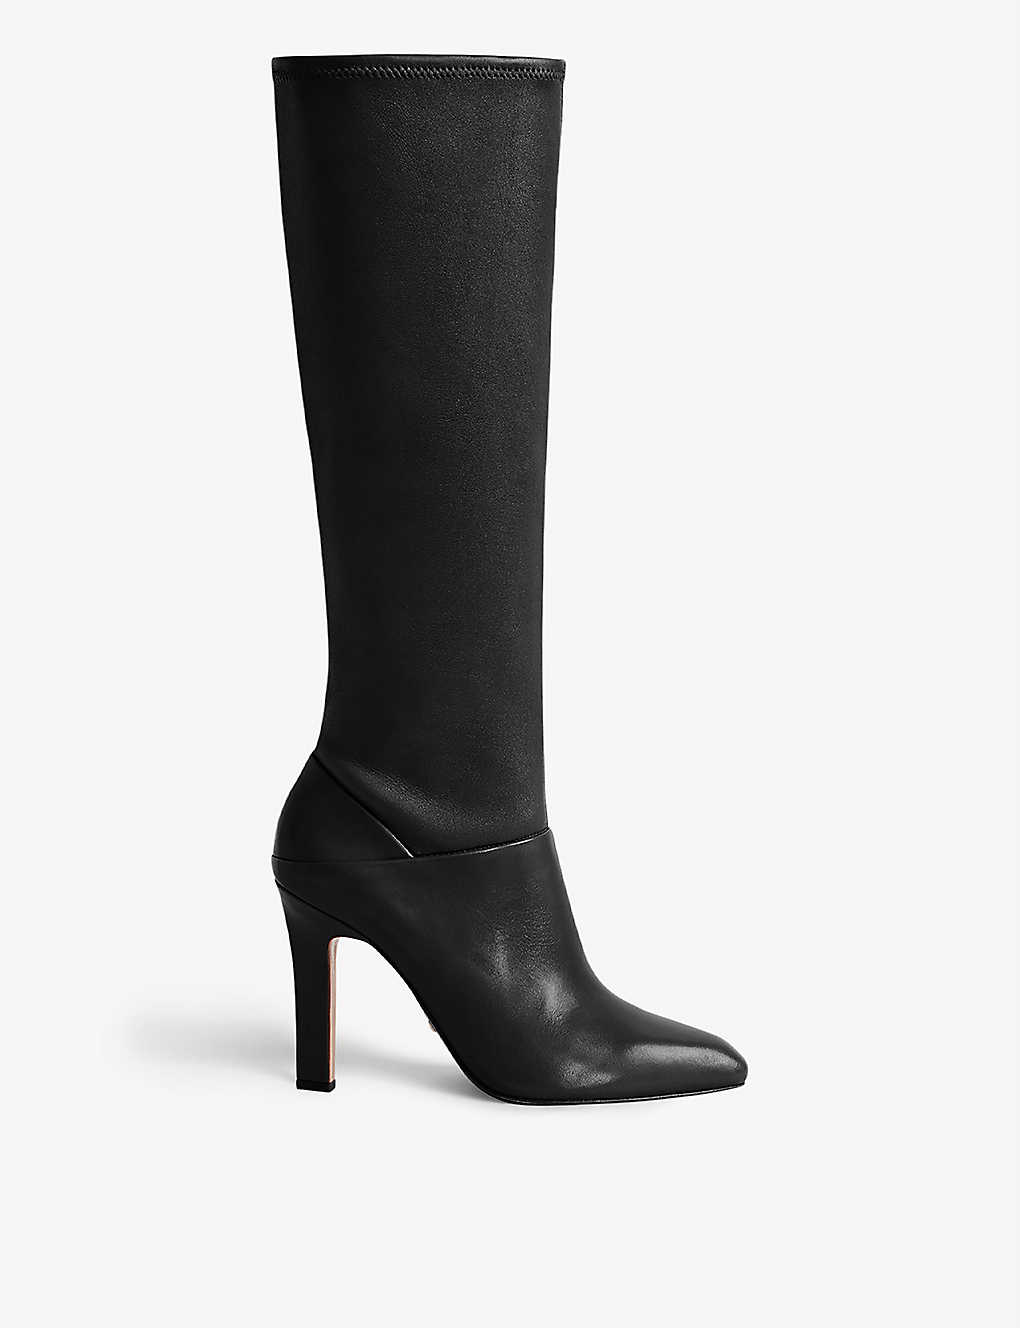 REISS: Cressida leather knee high boots